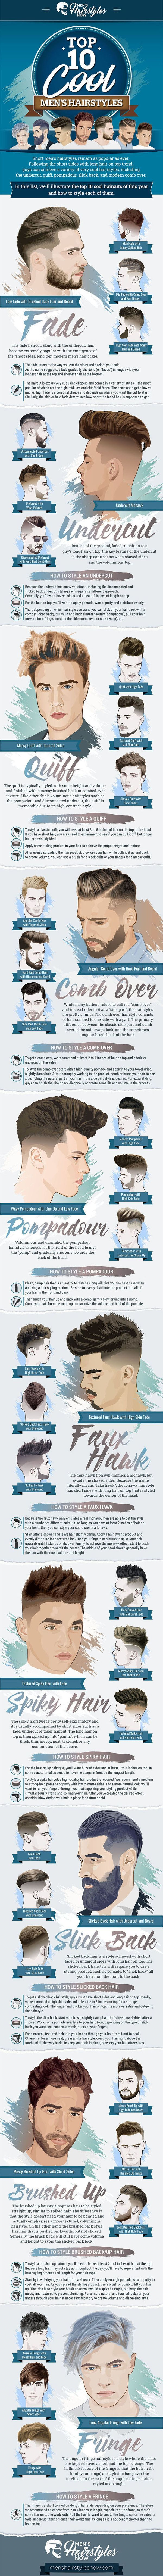 Best mens haircuts melbourne  best hair images on pinterest  hairstyle ideas hombre hairstyle